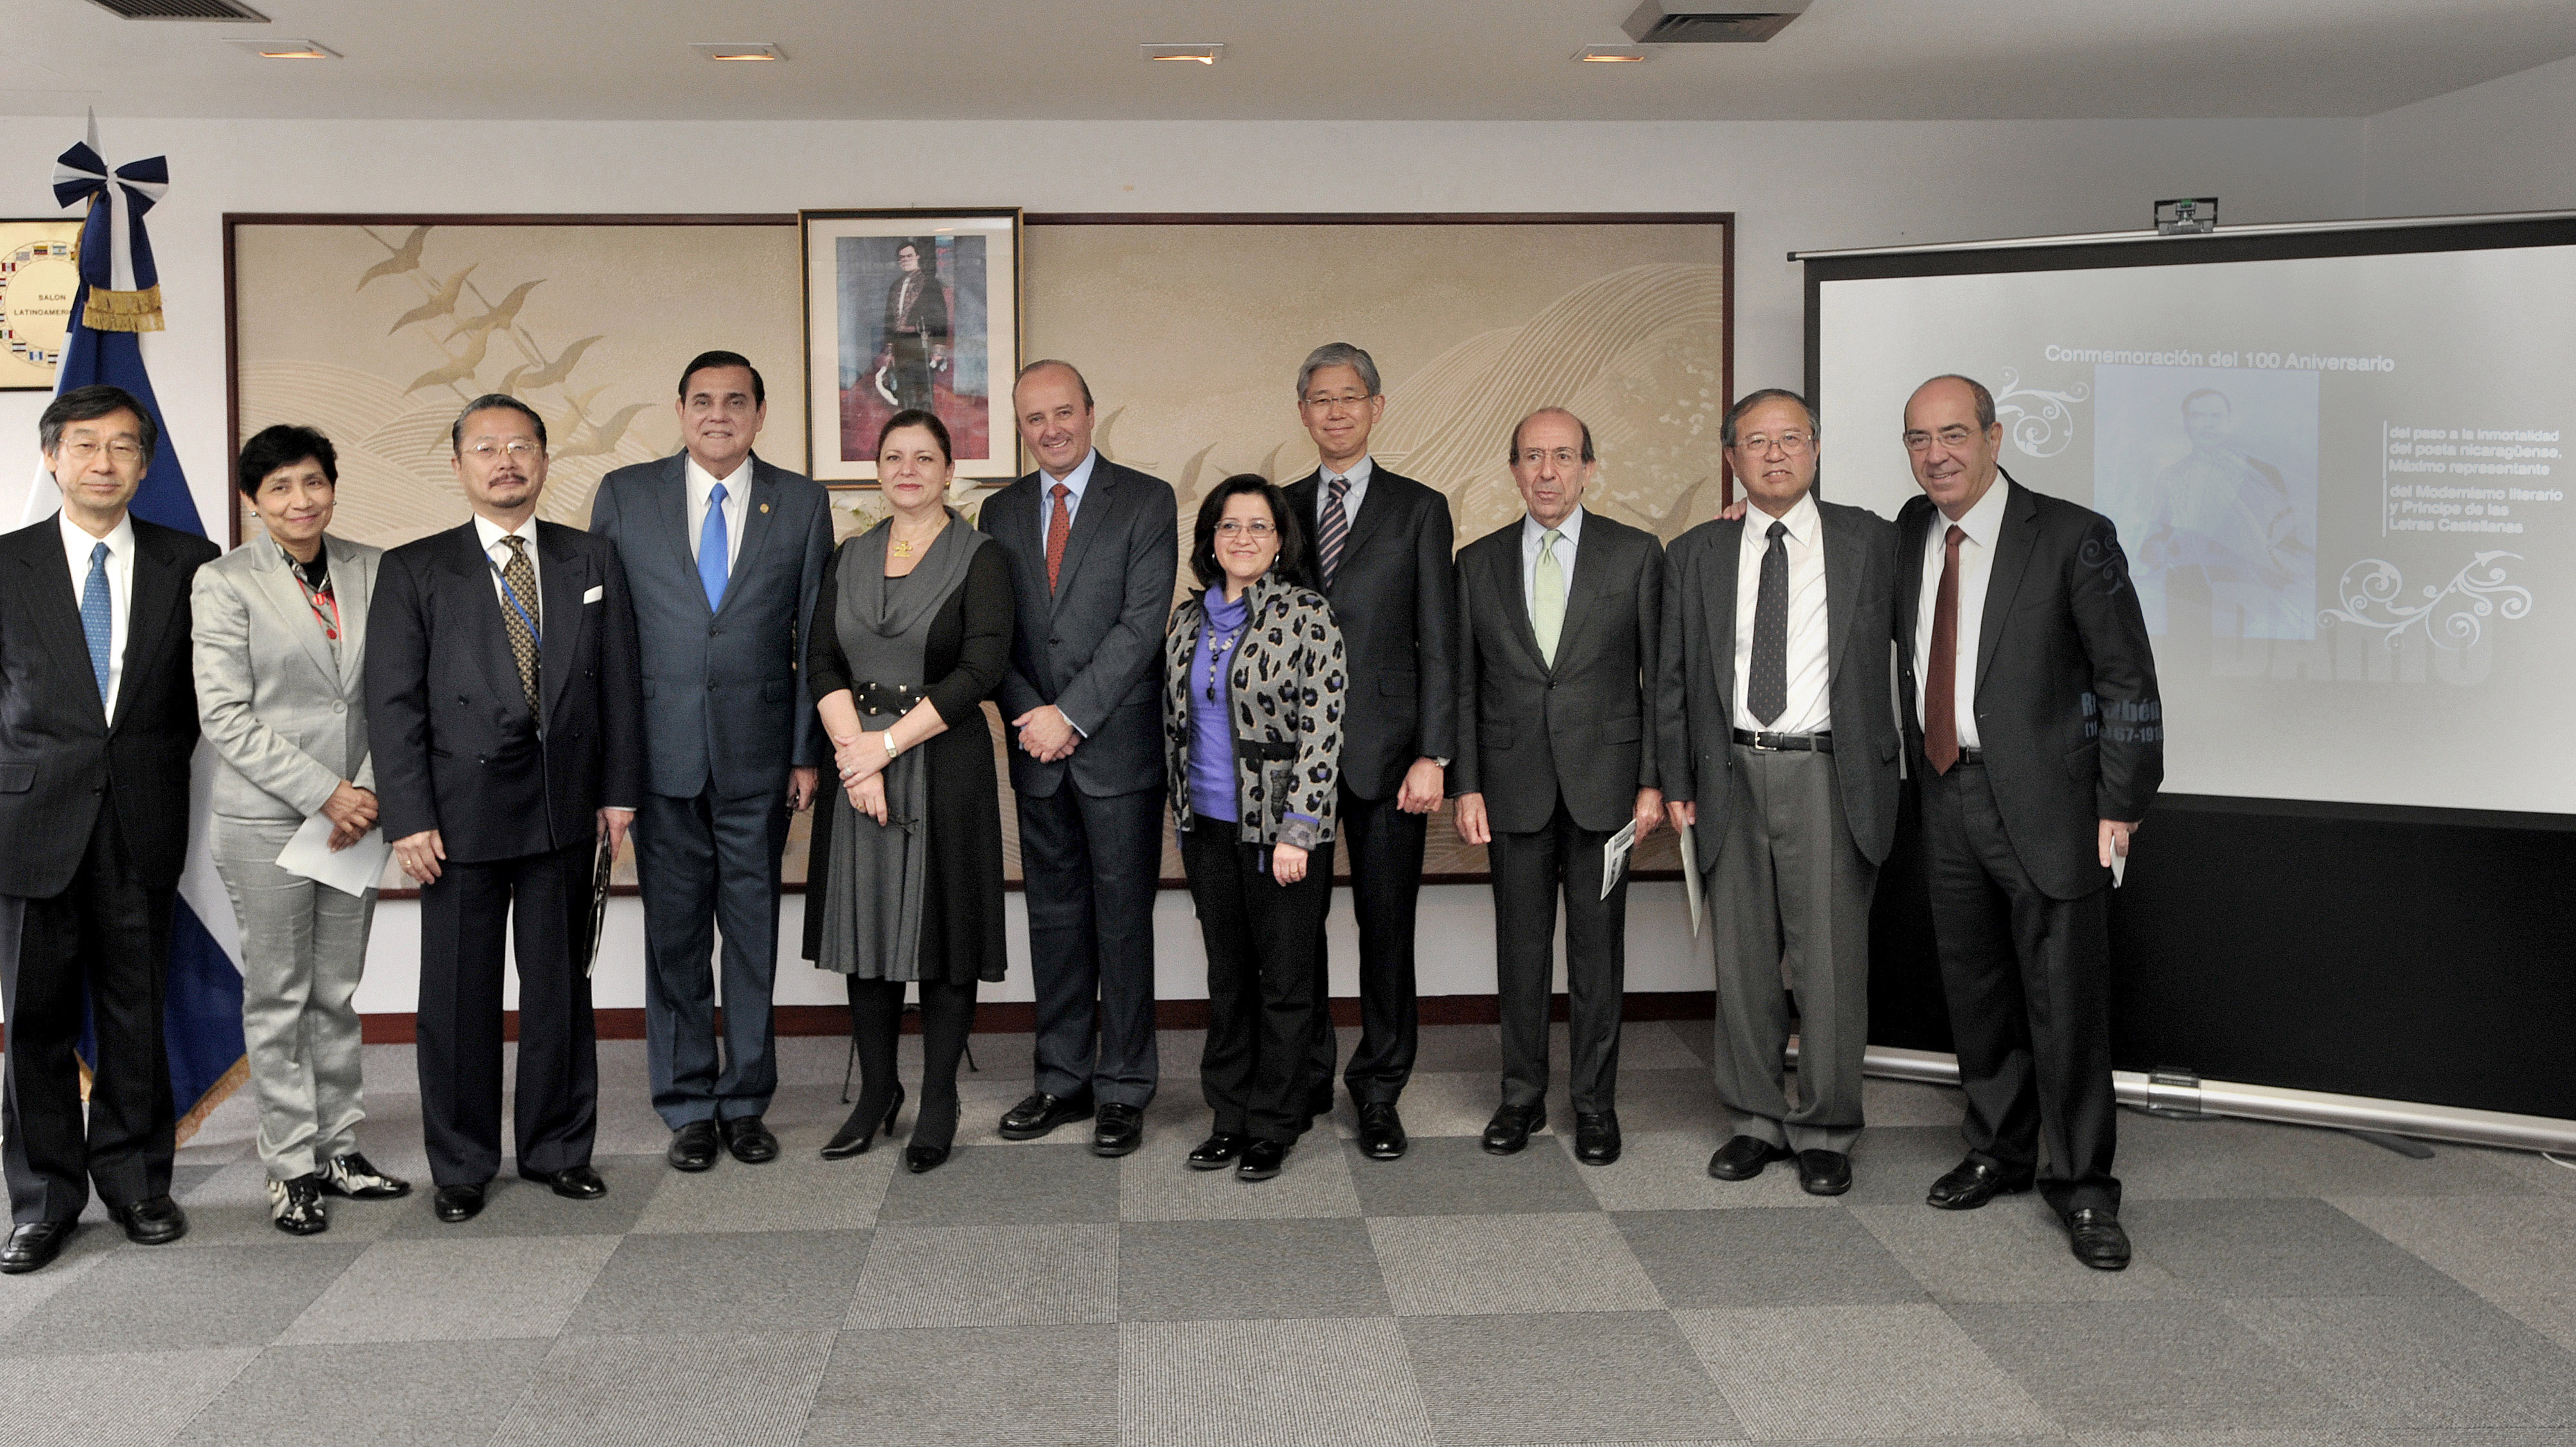 """Nicaraguan Ambassador Saul Arana (fourth from left) poses with Latin American ambassadors; the Spanish ambassador; guest speakers Naohito Watanabe (third from left), senior deputy director, Global Environment Division, International Cooperation Bureau, Ministry of Foreign Affairs; Norio Shimizu (second from right), Sofia University professor; Antonio Gil de Carrasco (right), director of the Instituto Cervantes Tokyo; Yasushi Takase (fourth from right), director-general, Latin American and Caribbean Affairs Bureau, MOFA; and others at an event, the """"100th anniversary of the death of  the immortal Nicaraguan poet Ruben Dario (1867-1916),"""" at the Latin America Salon in Tokyo on Feb. 8. 